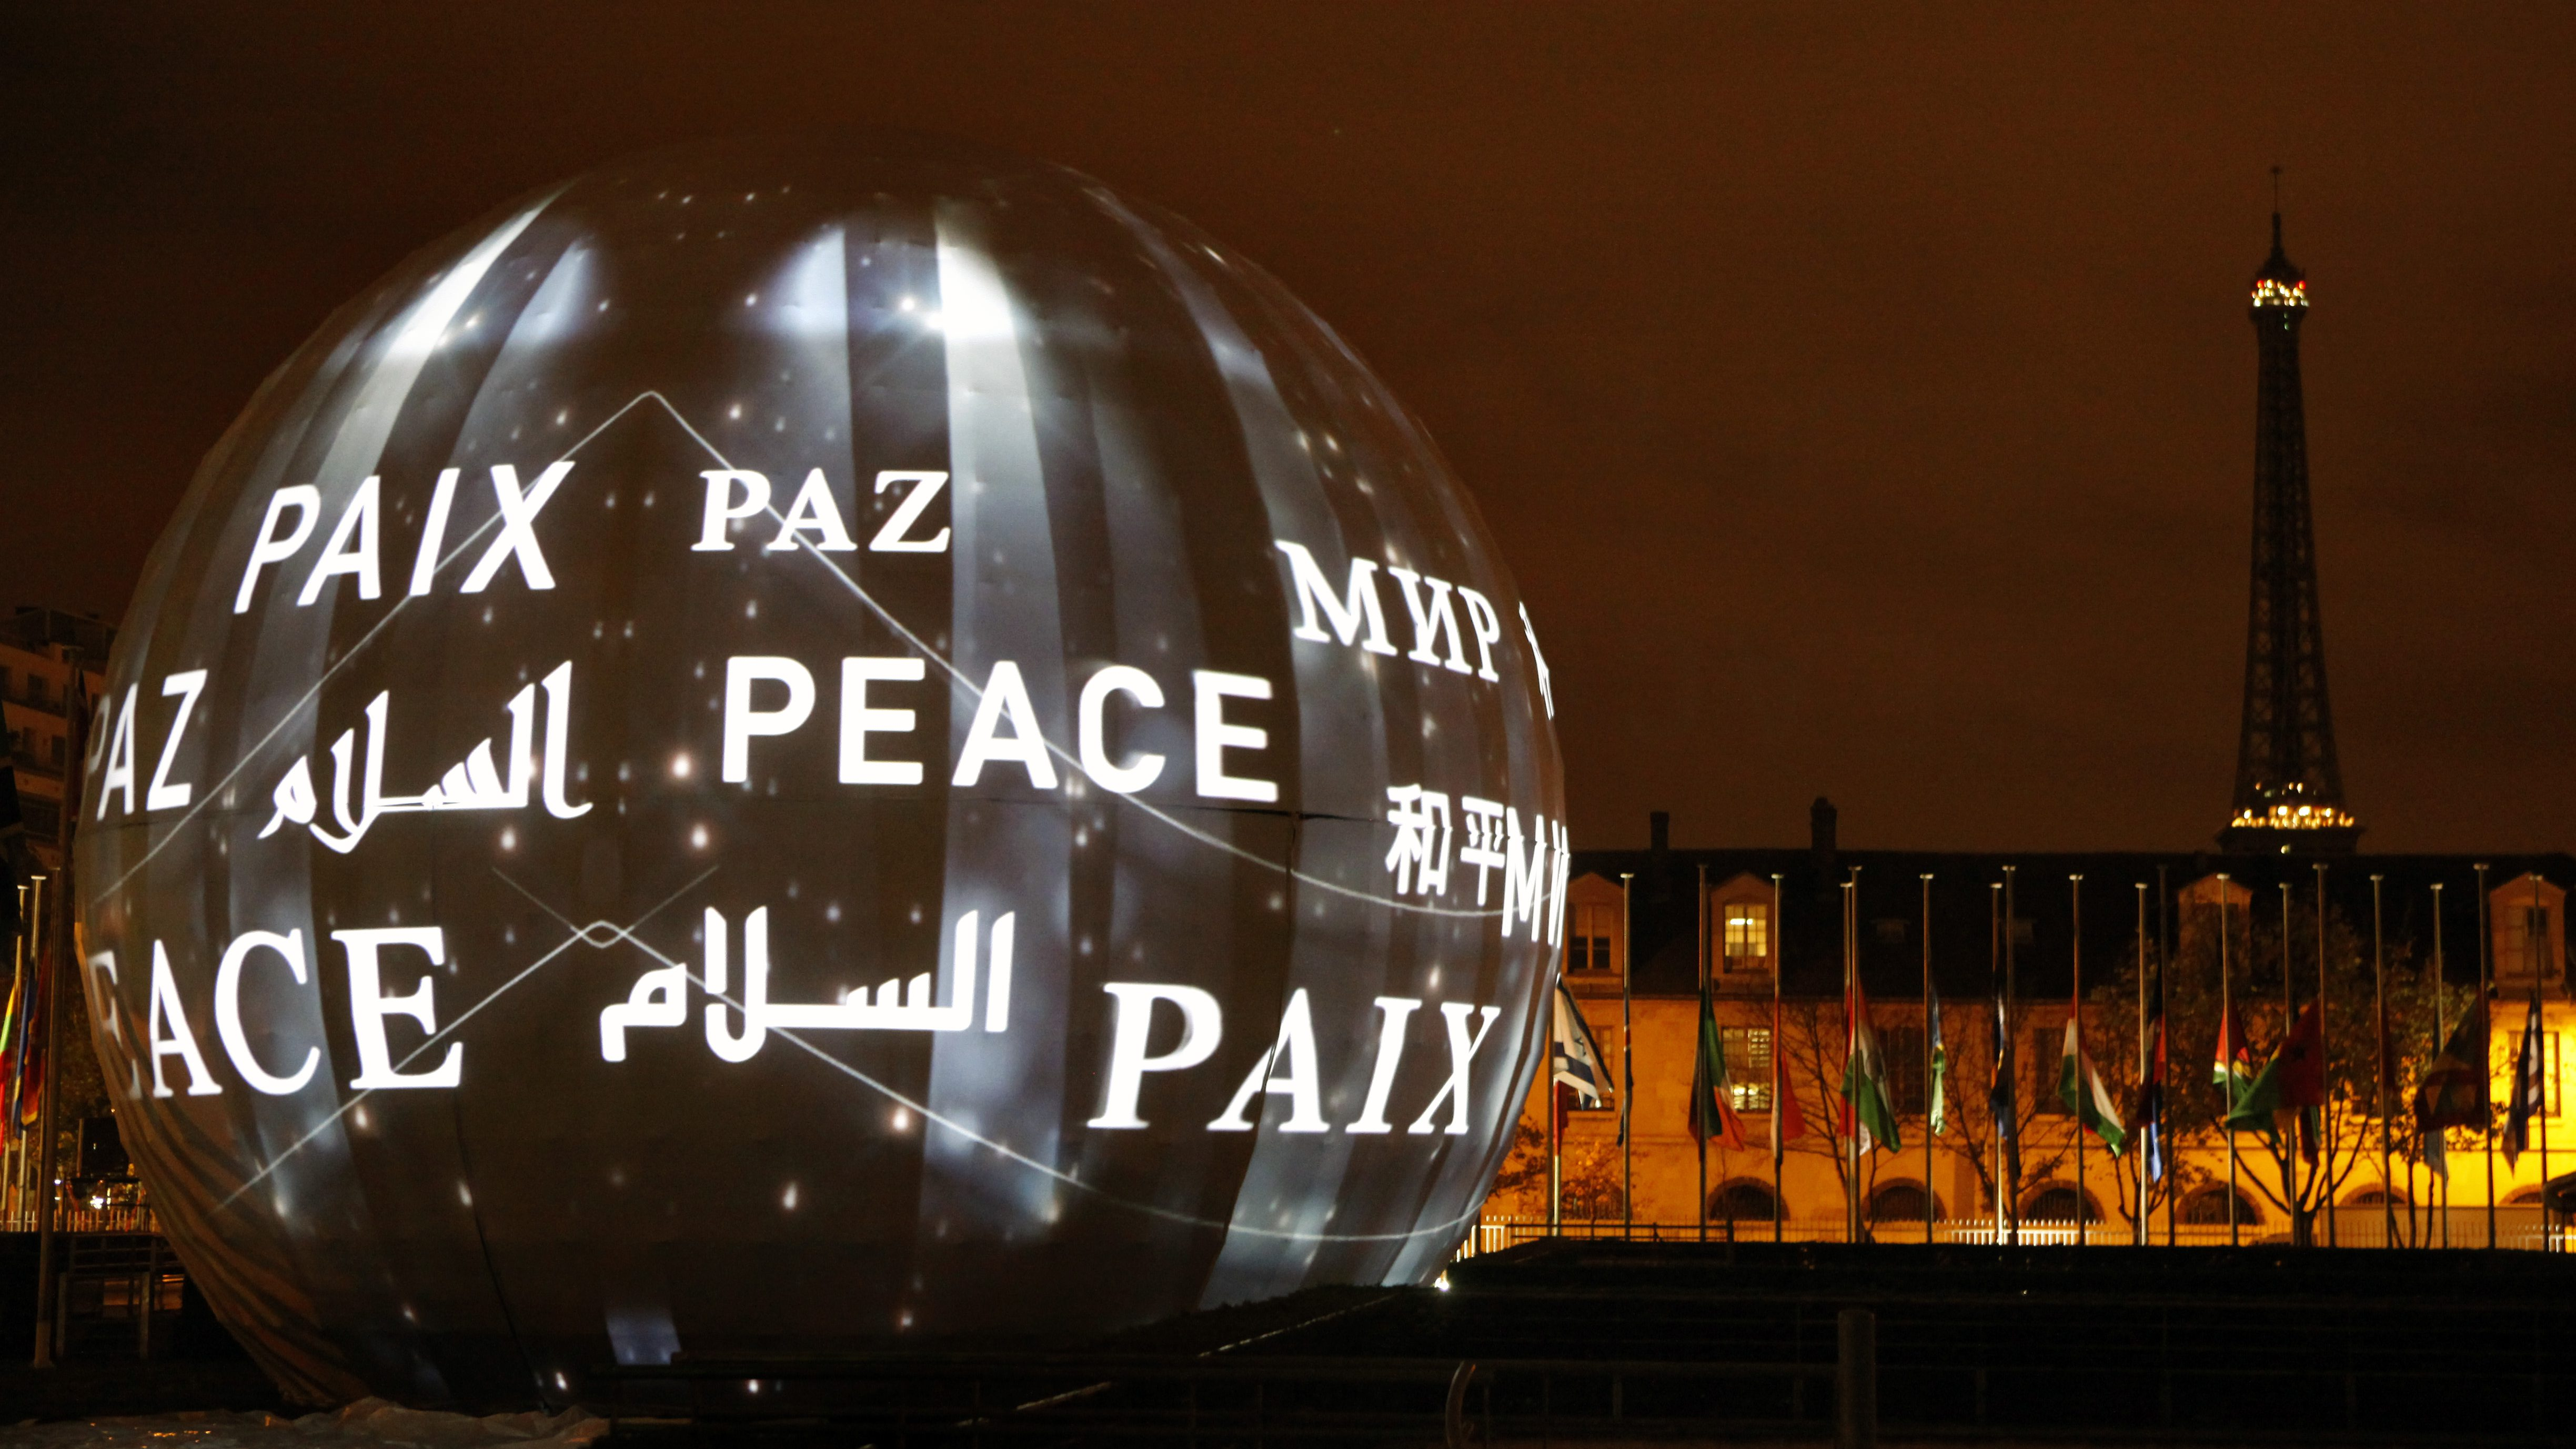 The word peace in the six official languages of the organization is projected at UNESCO headquarters in Paris, France, Saturday, Nov. 14, 2015. French President Francois Hollande said more than 120 people died Friday night in shootings at Paris cafes, suicide bombings near France's national stadium and a hostage-taking slaughter inside a concert hall. (AP Photo/Michel Spingler)